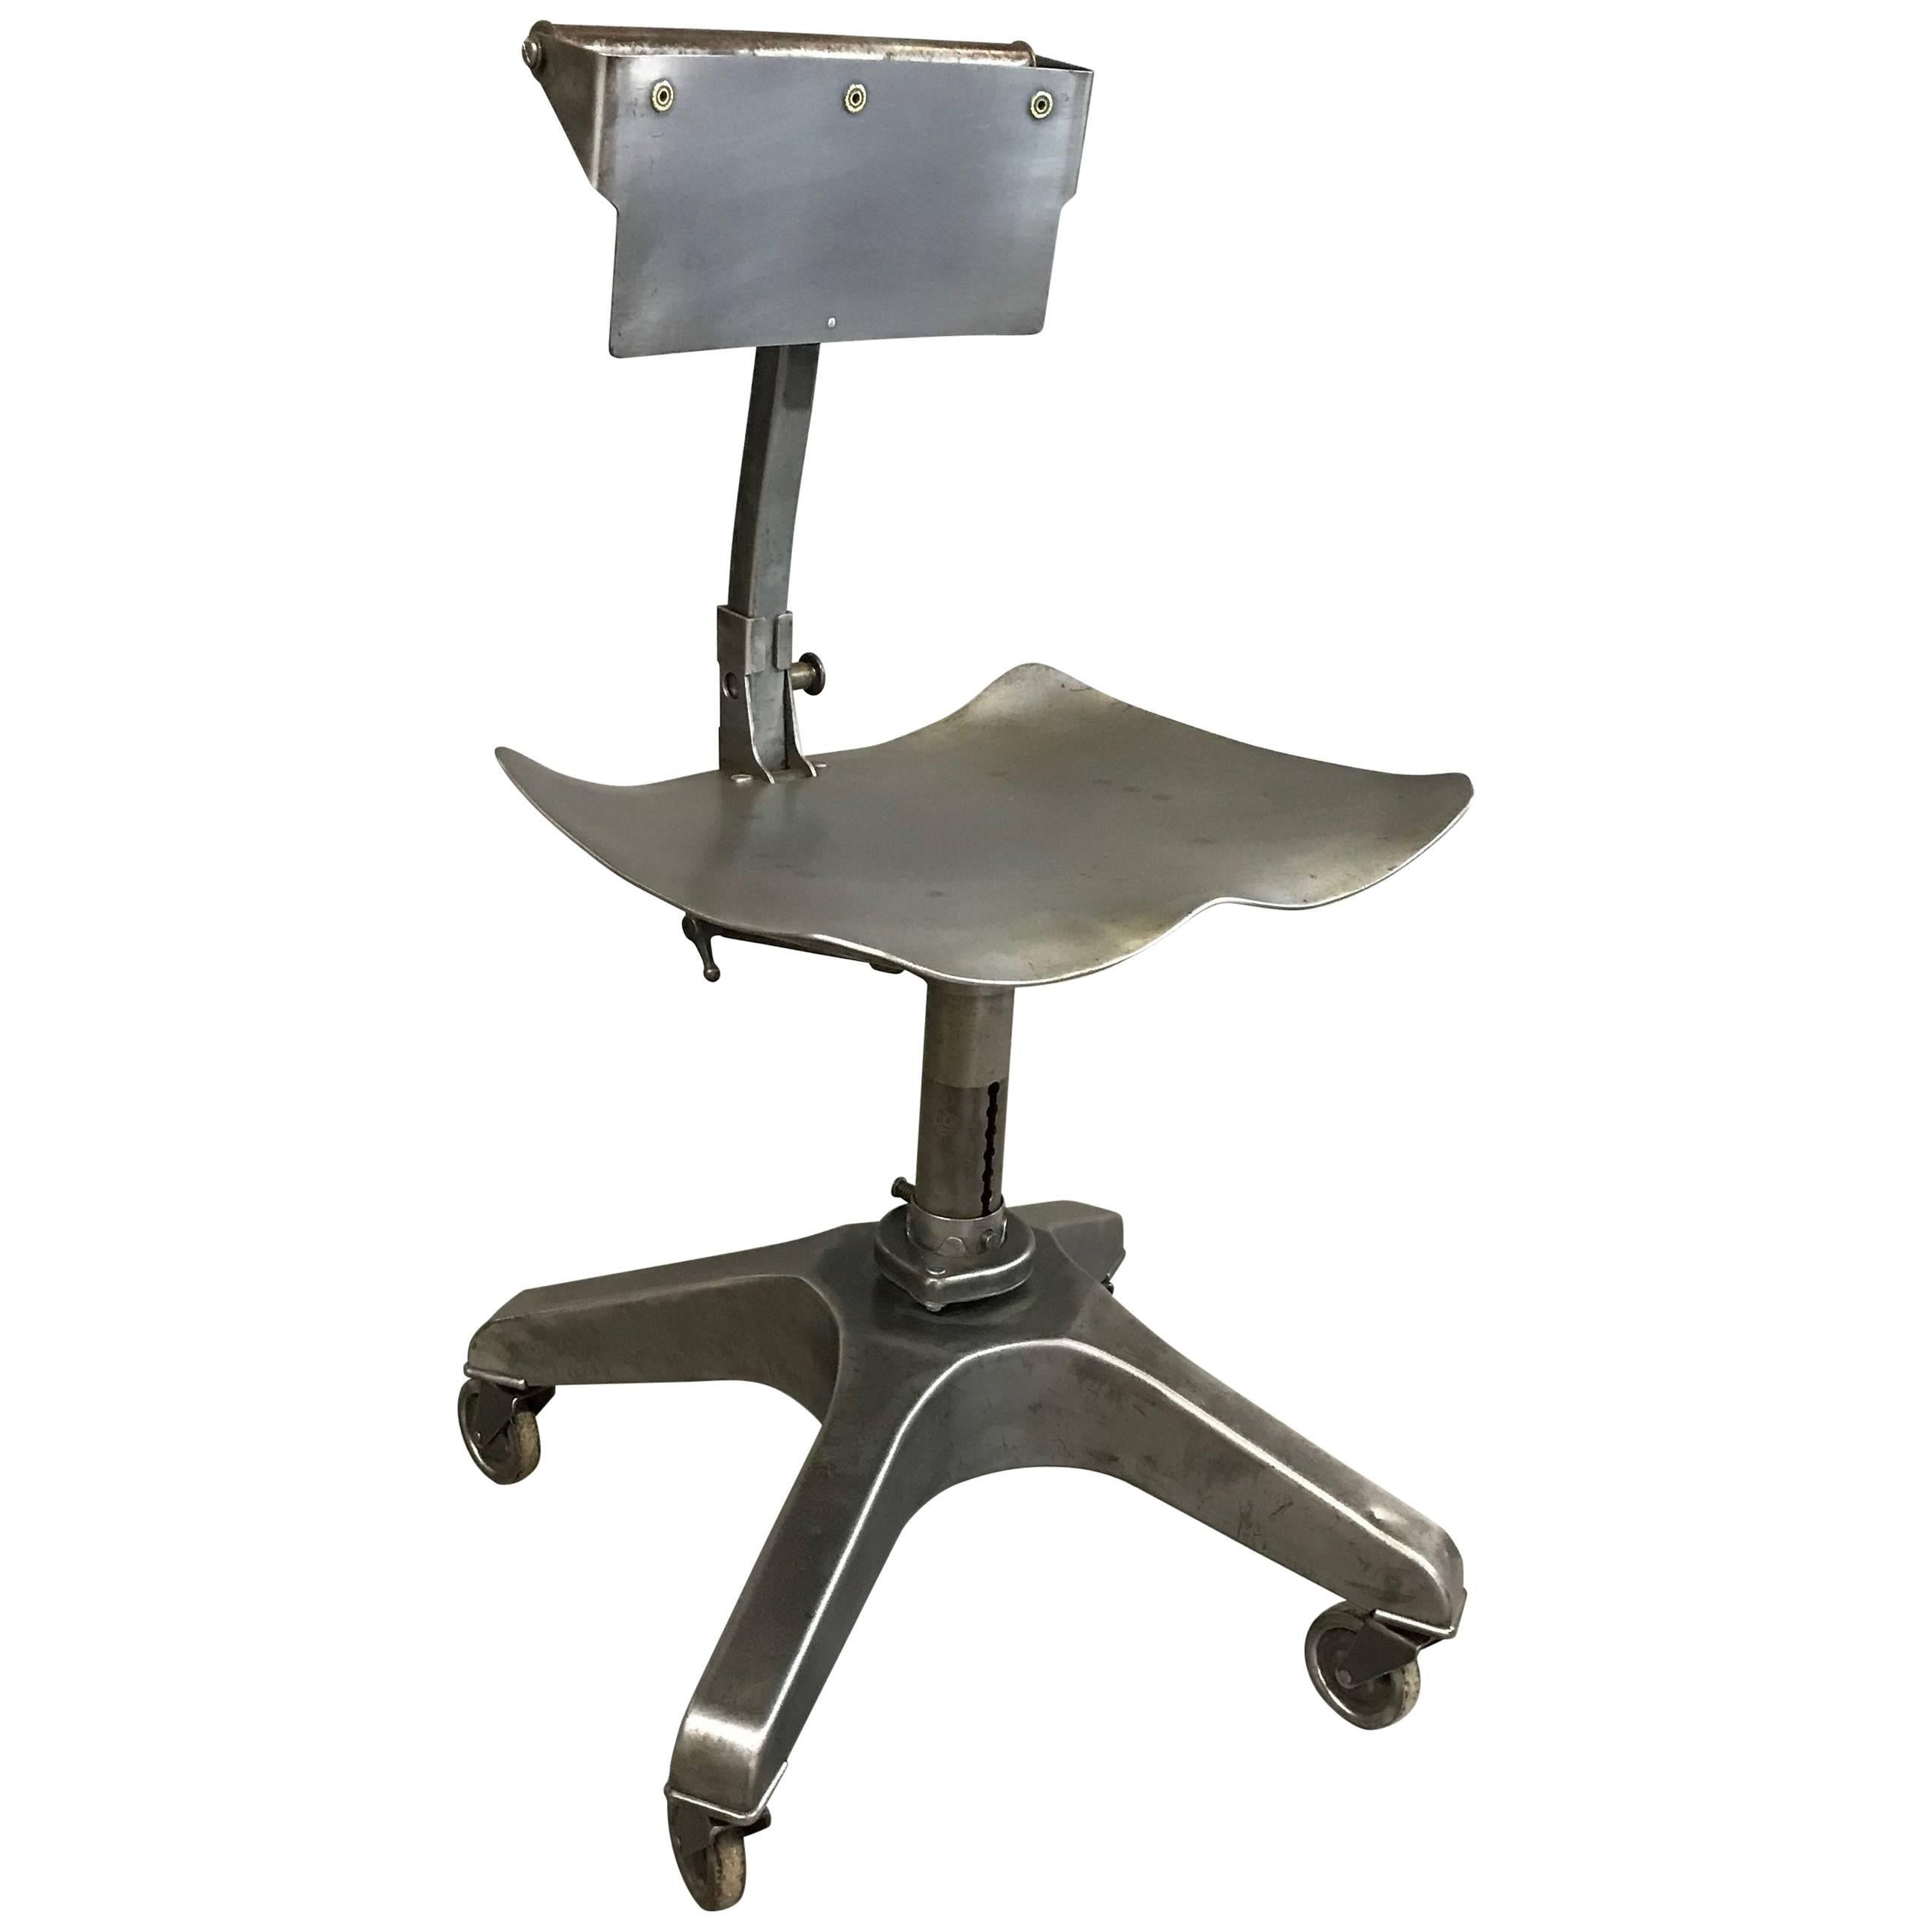 Industrial Steel Burroughs Adjustable Posture Office Chair For Sale  sc 1 st  1stDibs & Industrial Steel Burroughs Adjustable Posture Office Chair For Sale ...